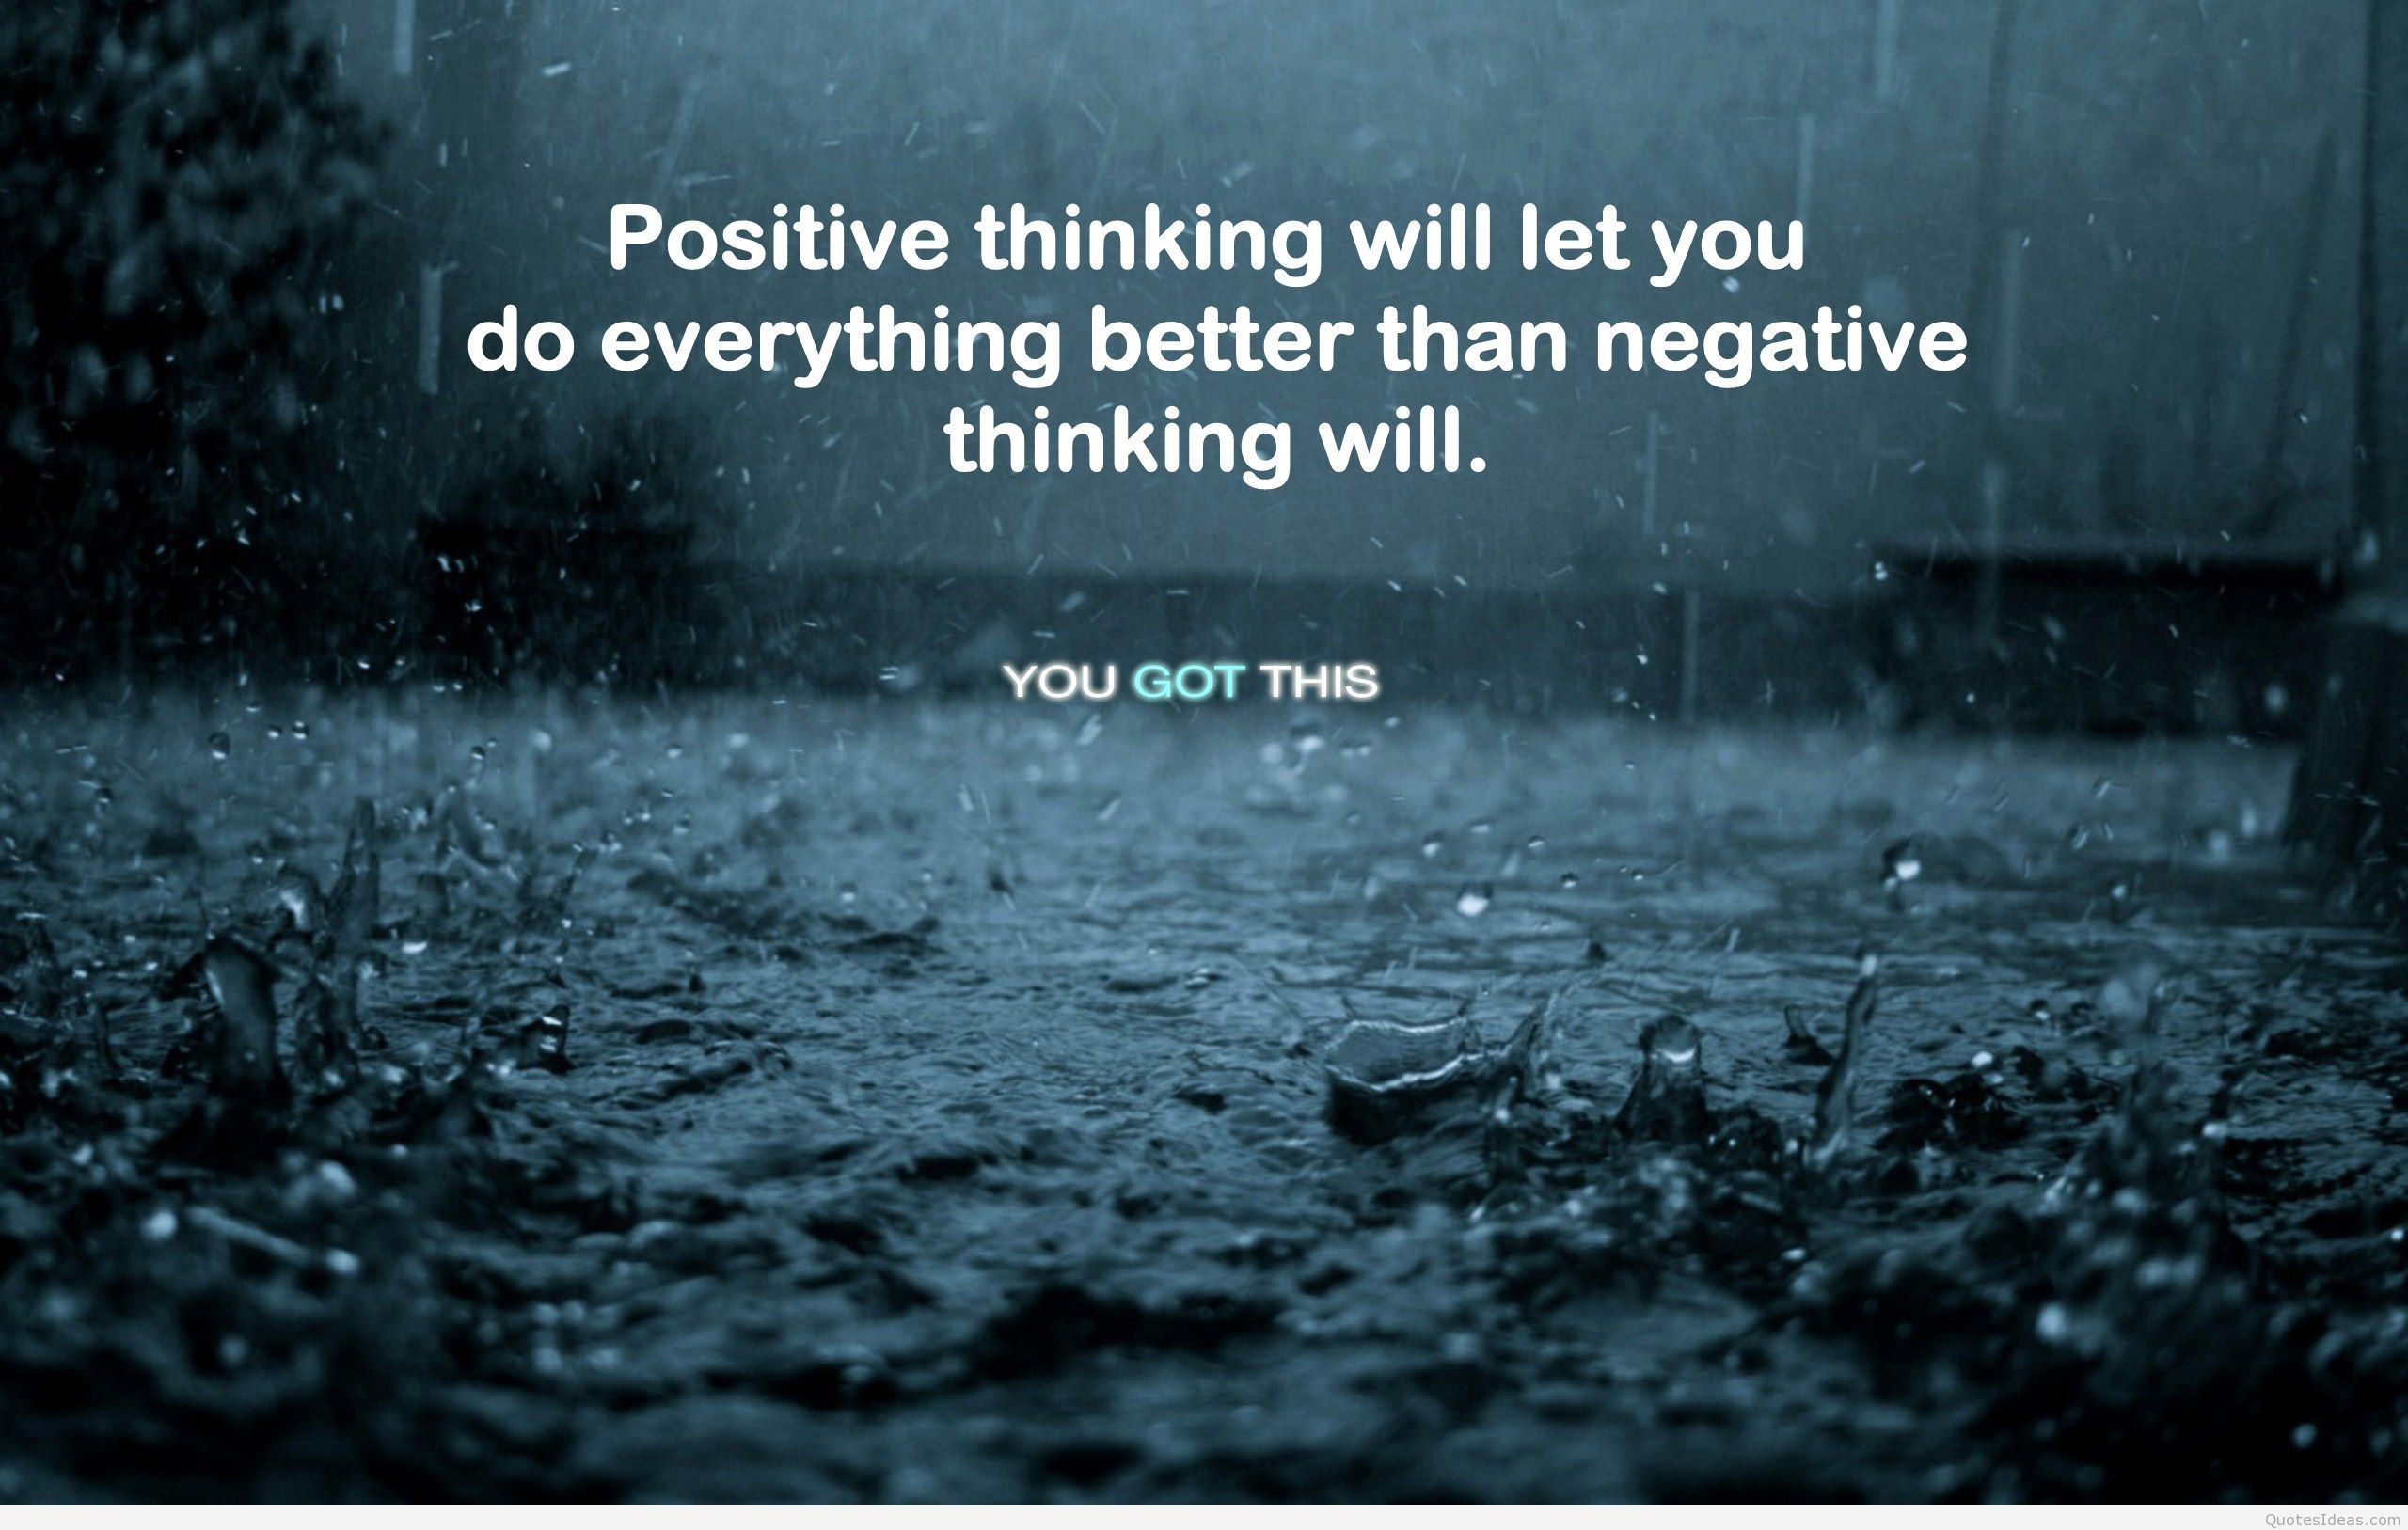 images of rain Positive rain wallpaper and positive